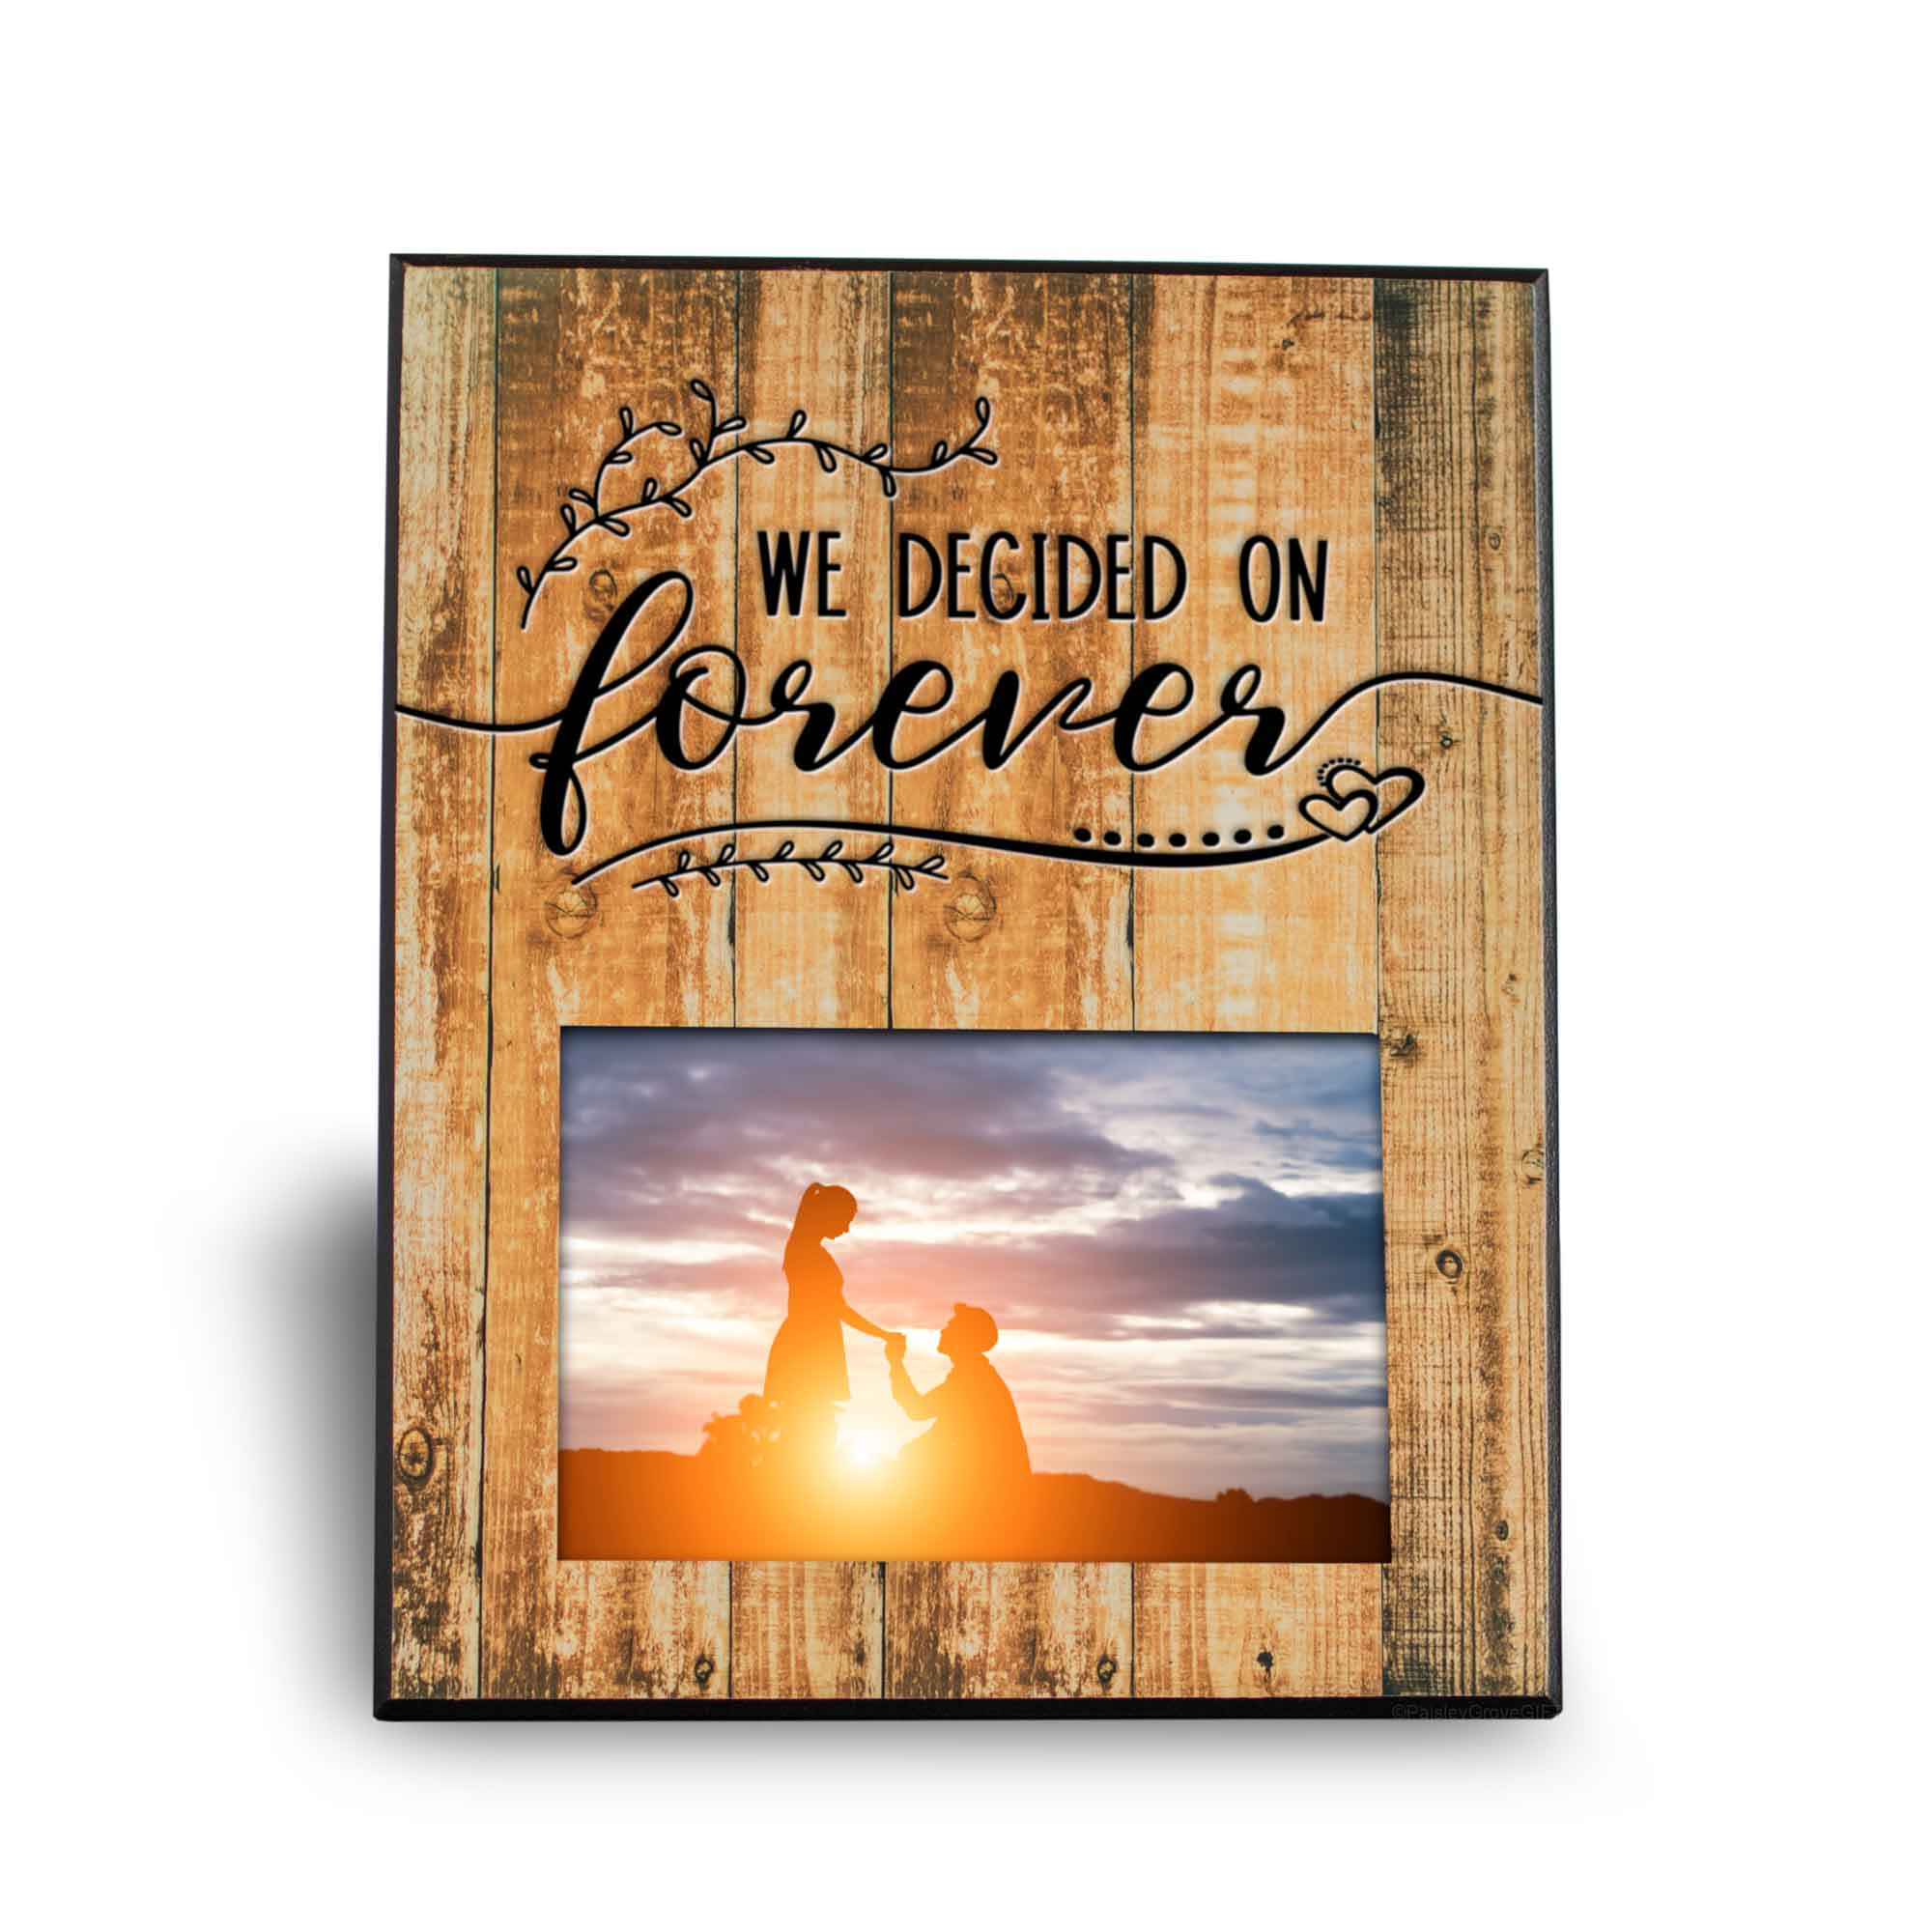 CopyrightPaisleyGroveGIFTS S201c1 We decided on forever engagement gifts for soon to be bride rustic frame